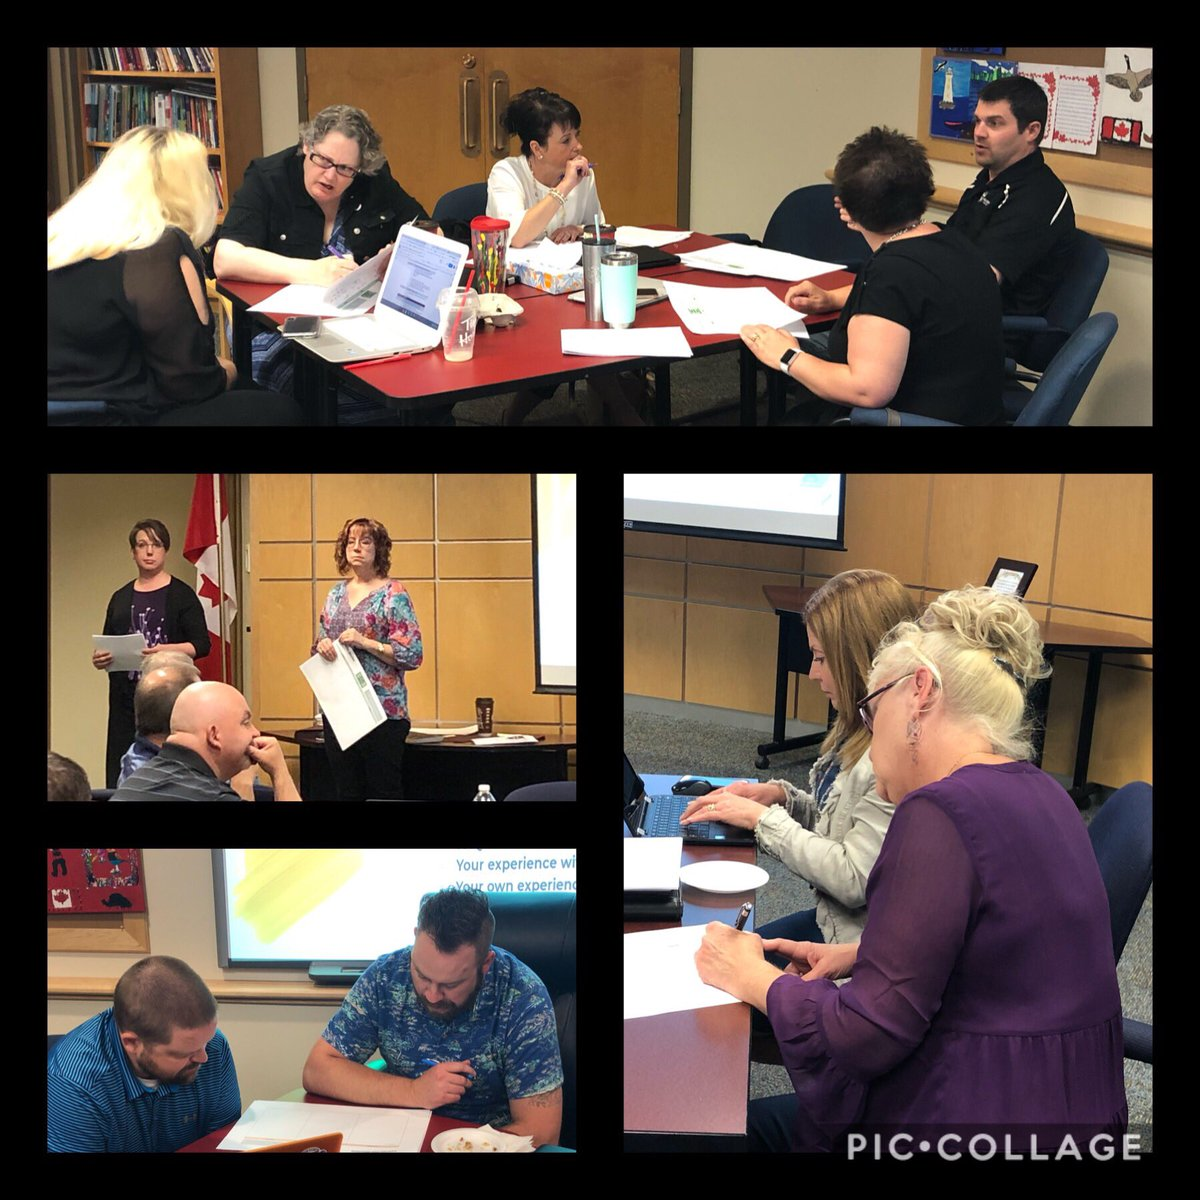 """@WCPS72 Administrators reflect on the Knowledge, Skills, and Attitudes needed to enhance #inclusion in WCPS as we continue moving from """"doing"""" to """"being""""!@ilsWCPS"""